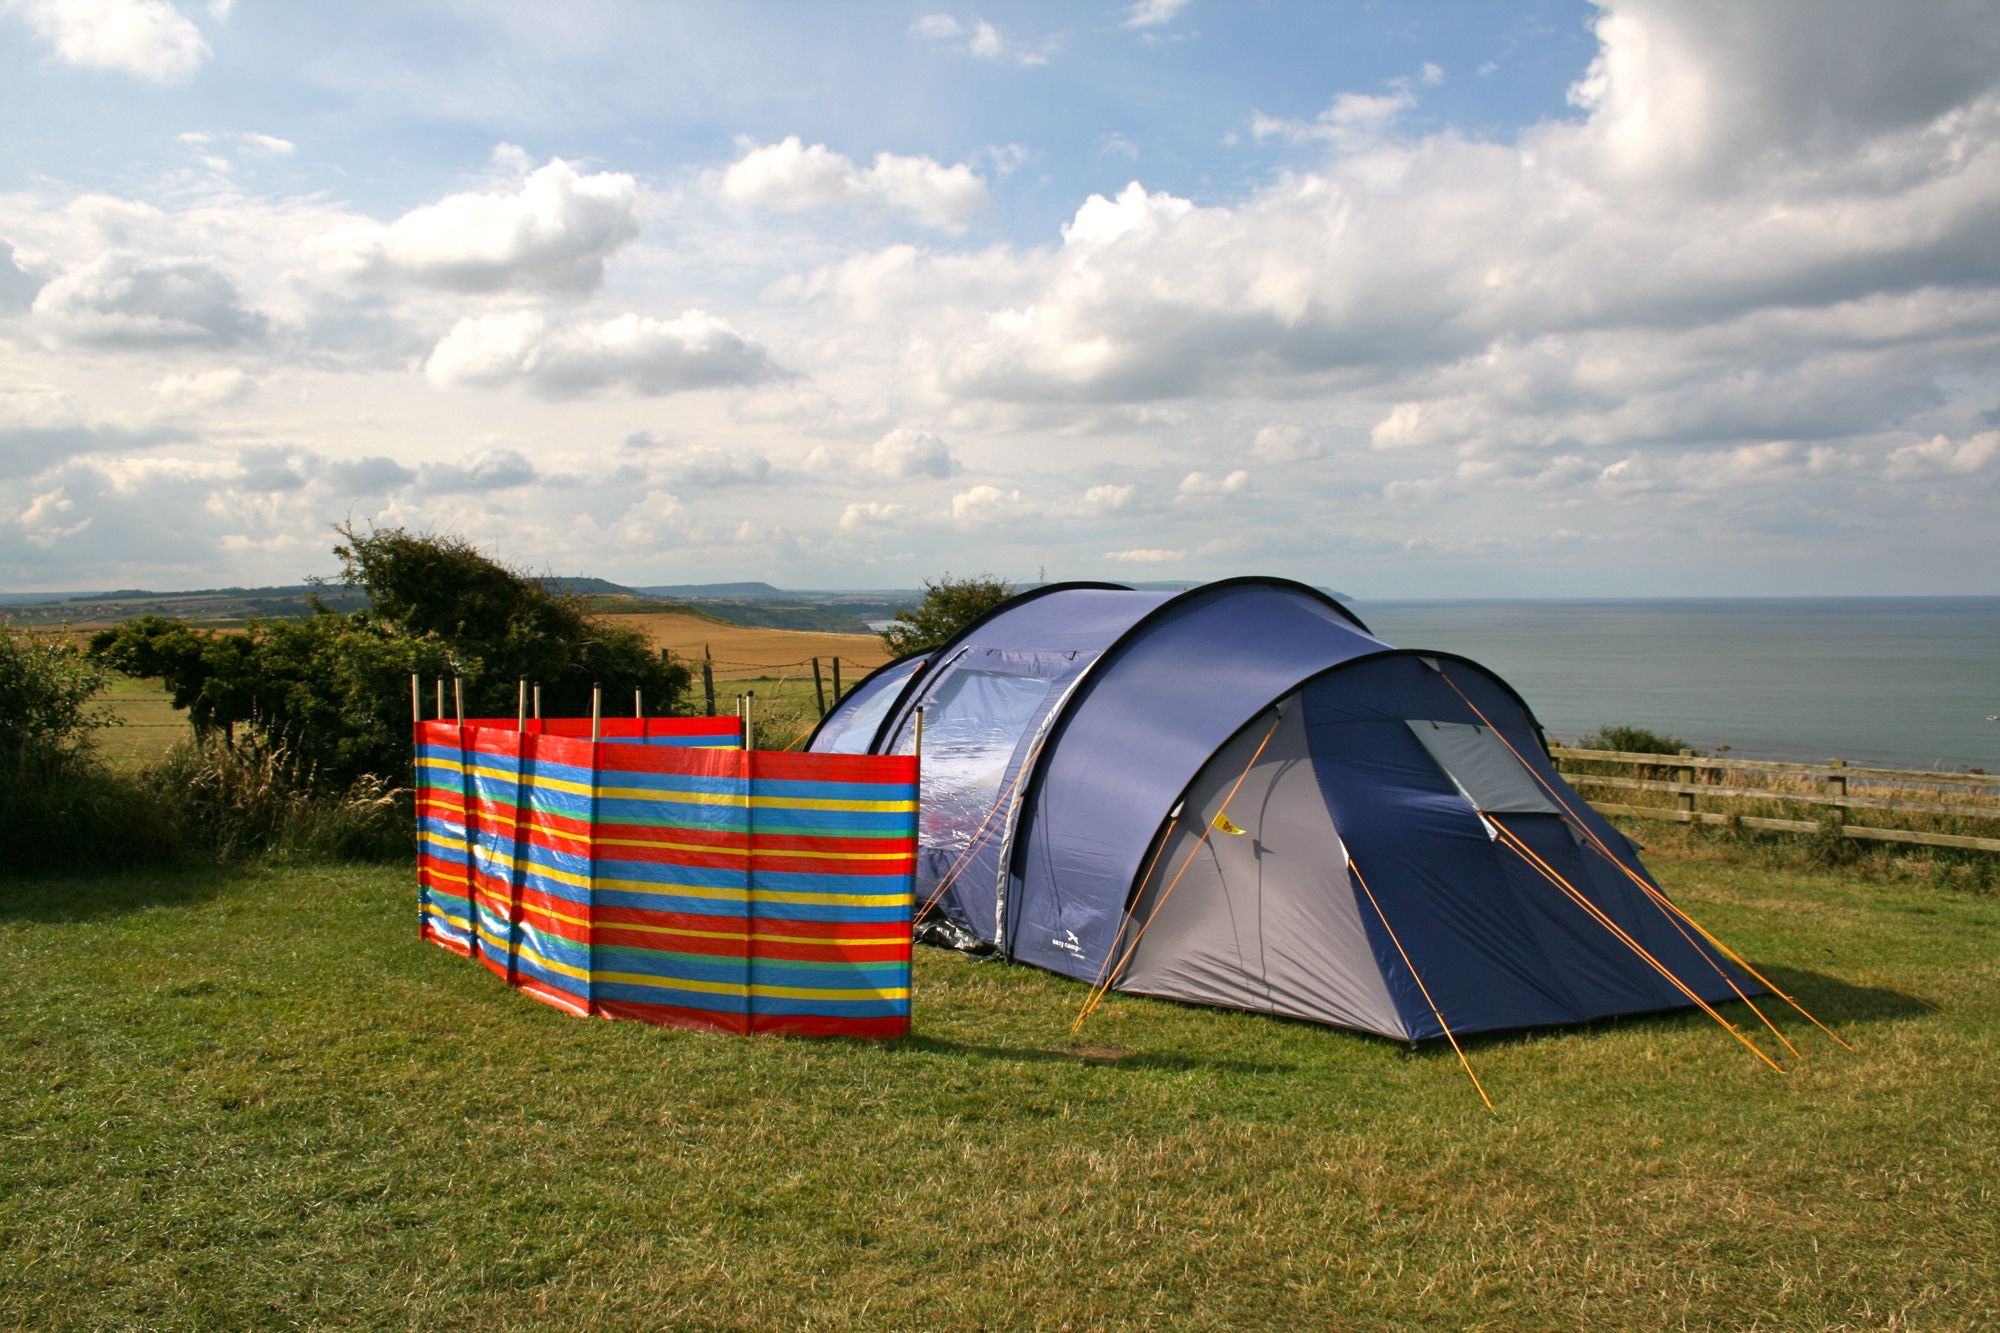 Campsites in yorkshire top rated campsites in yorkshire - Camping sites uk with swimming pools ...